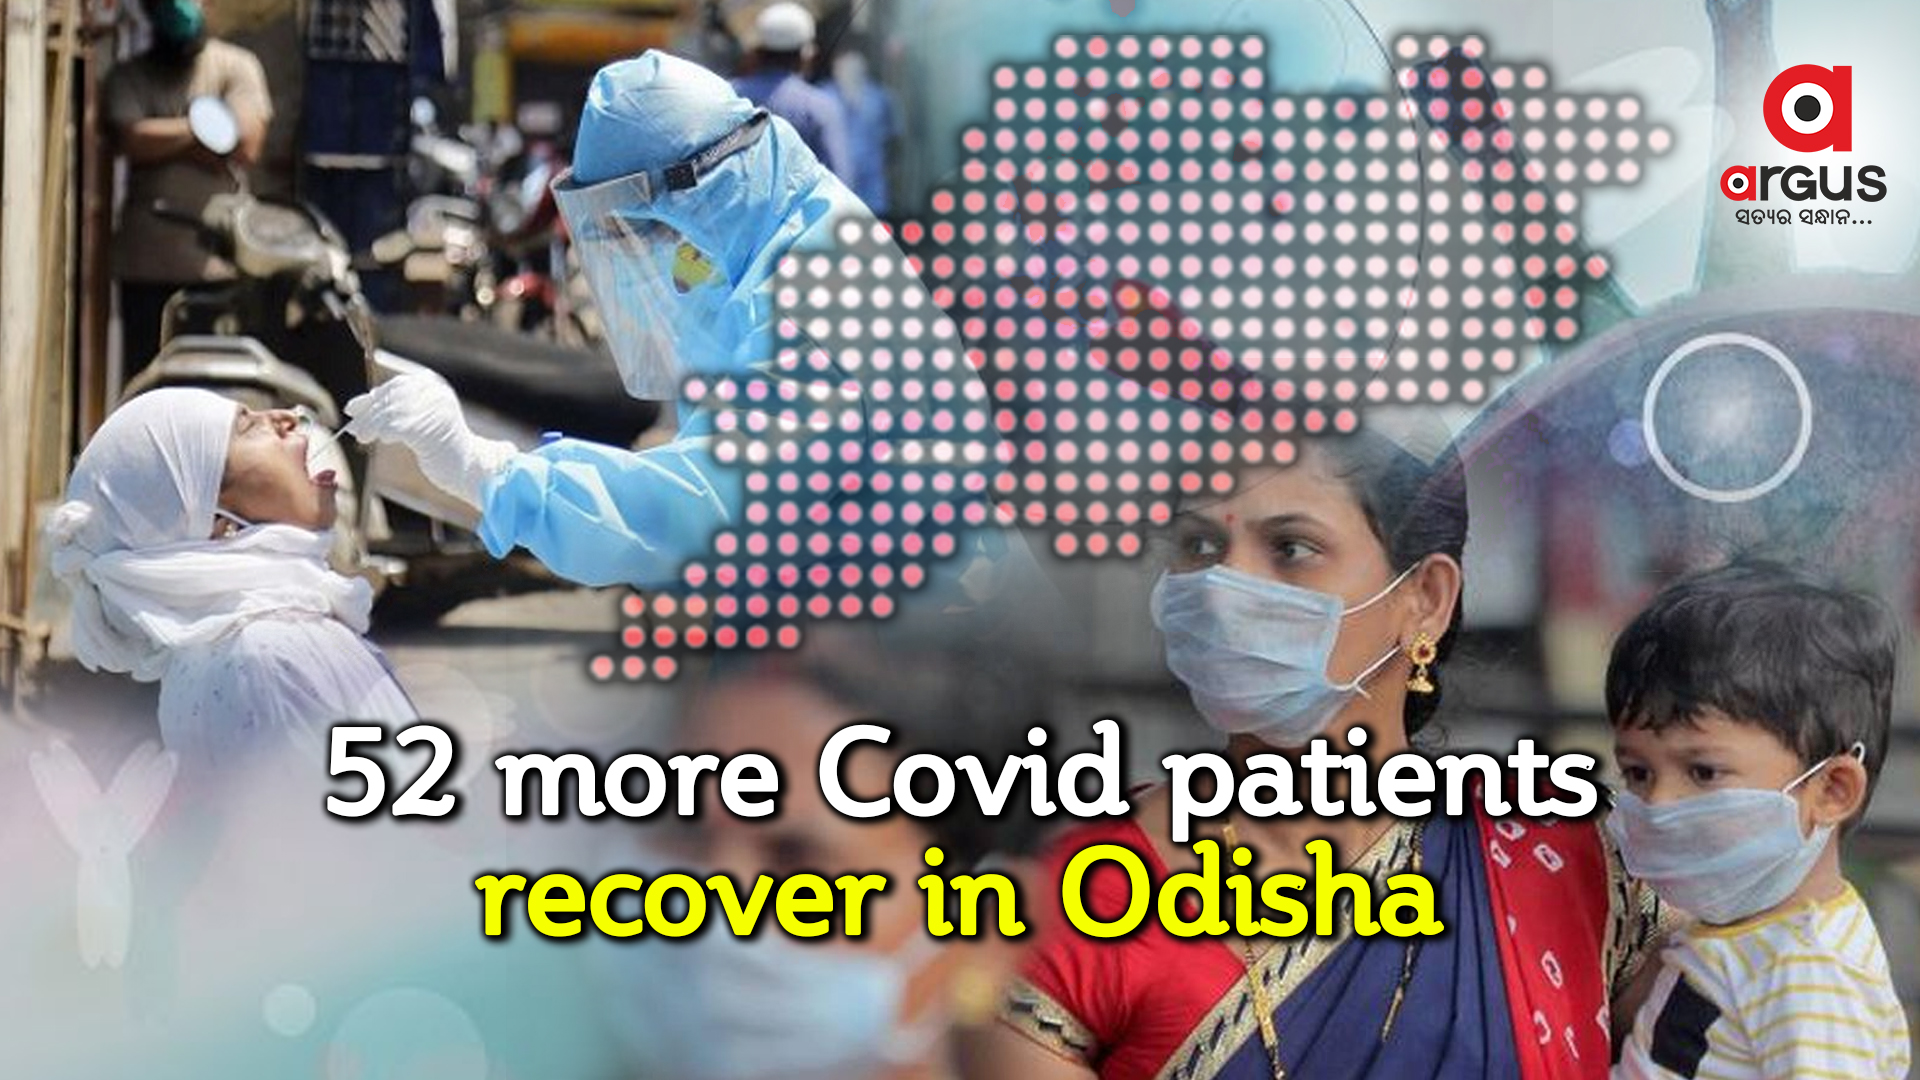 52 more Covid patients recover in Odisha; Total 3,34,571 cured